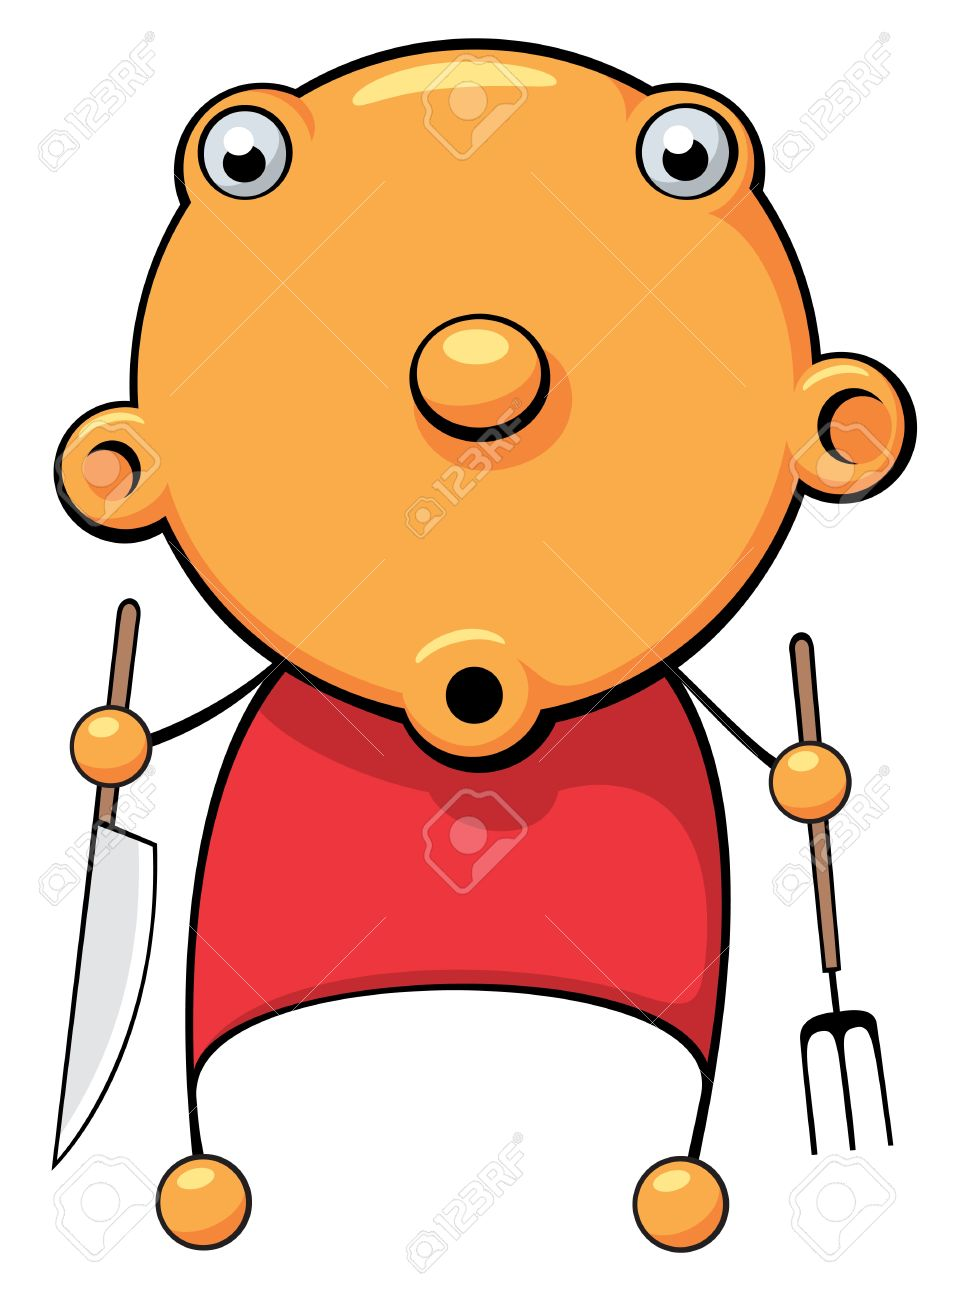 Illustration Of A Hungry Baby With Fork And Knife In His Hands.